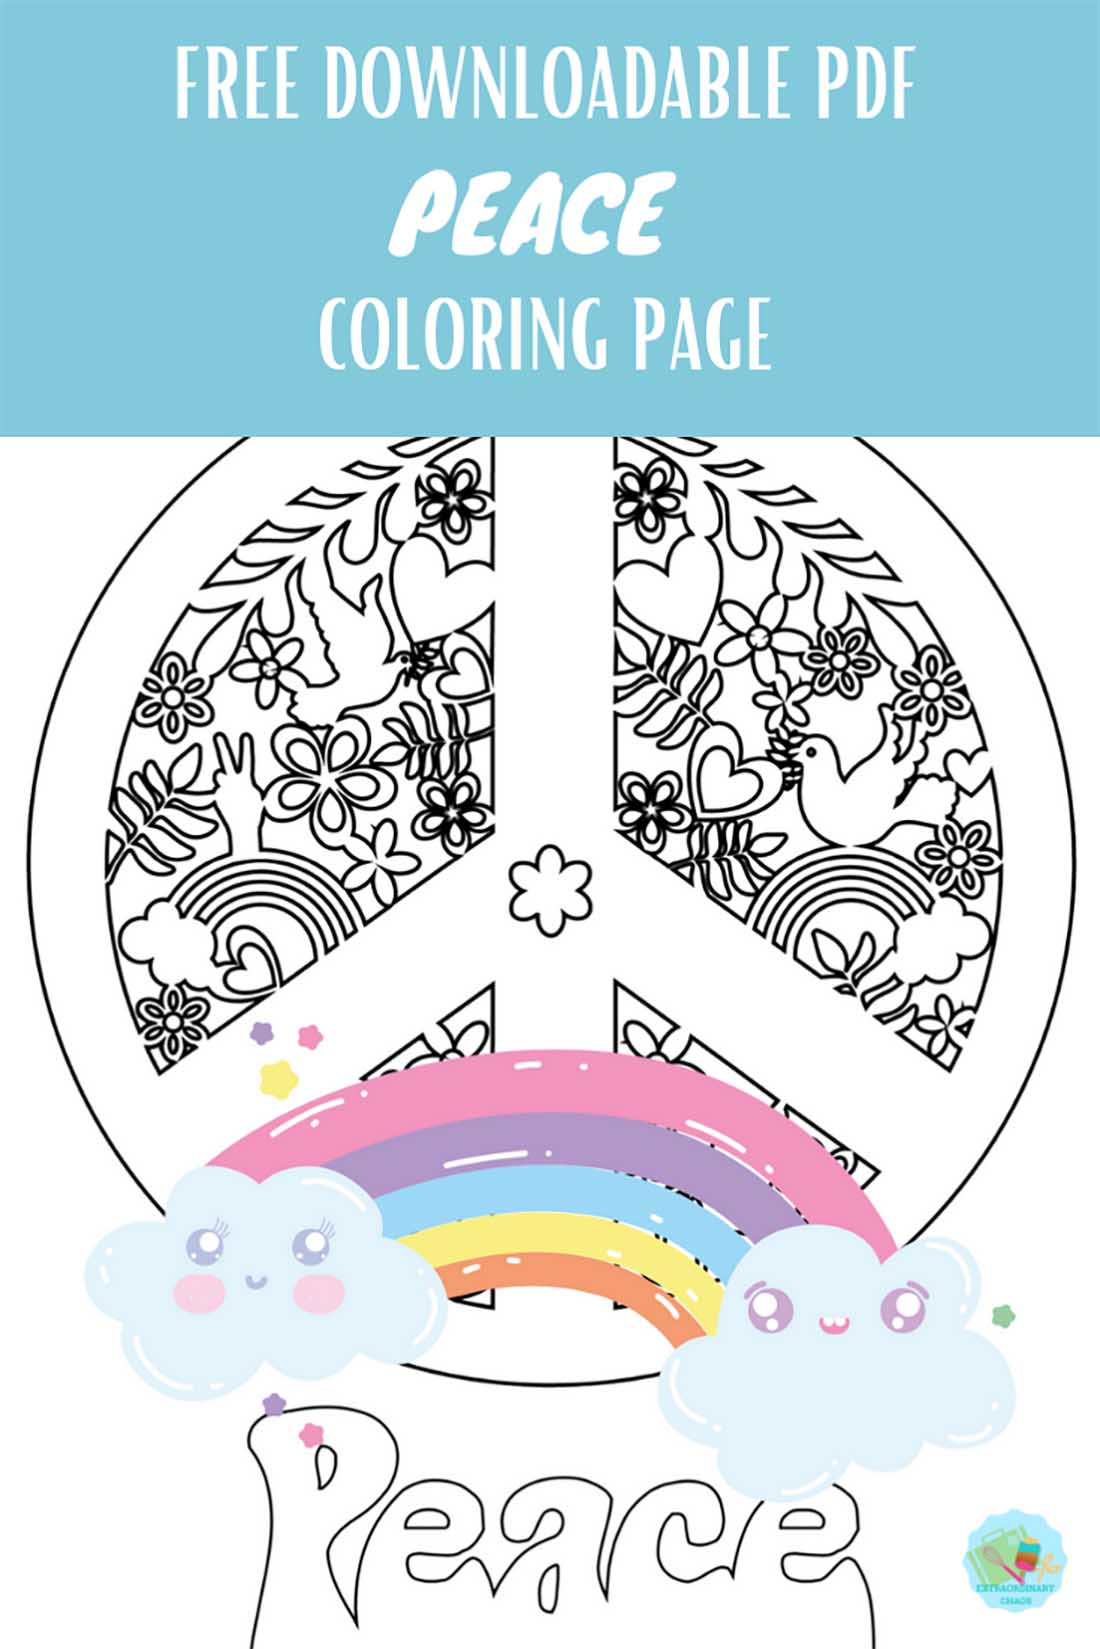 Free downloadable peace colouring page